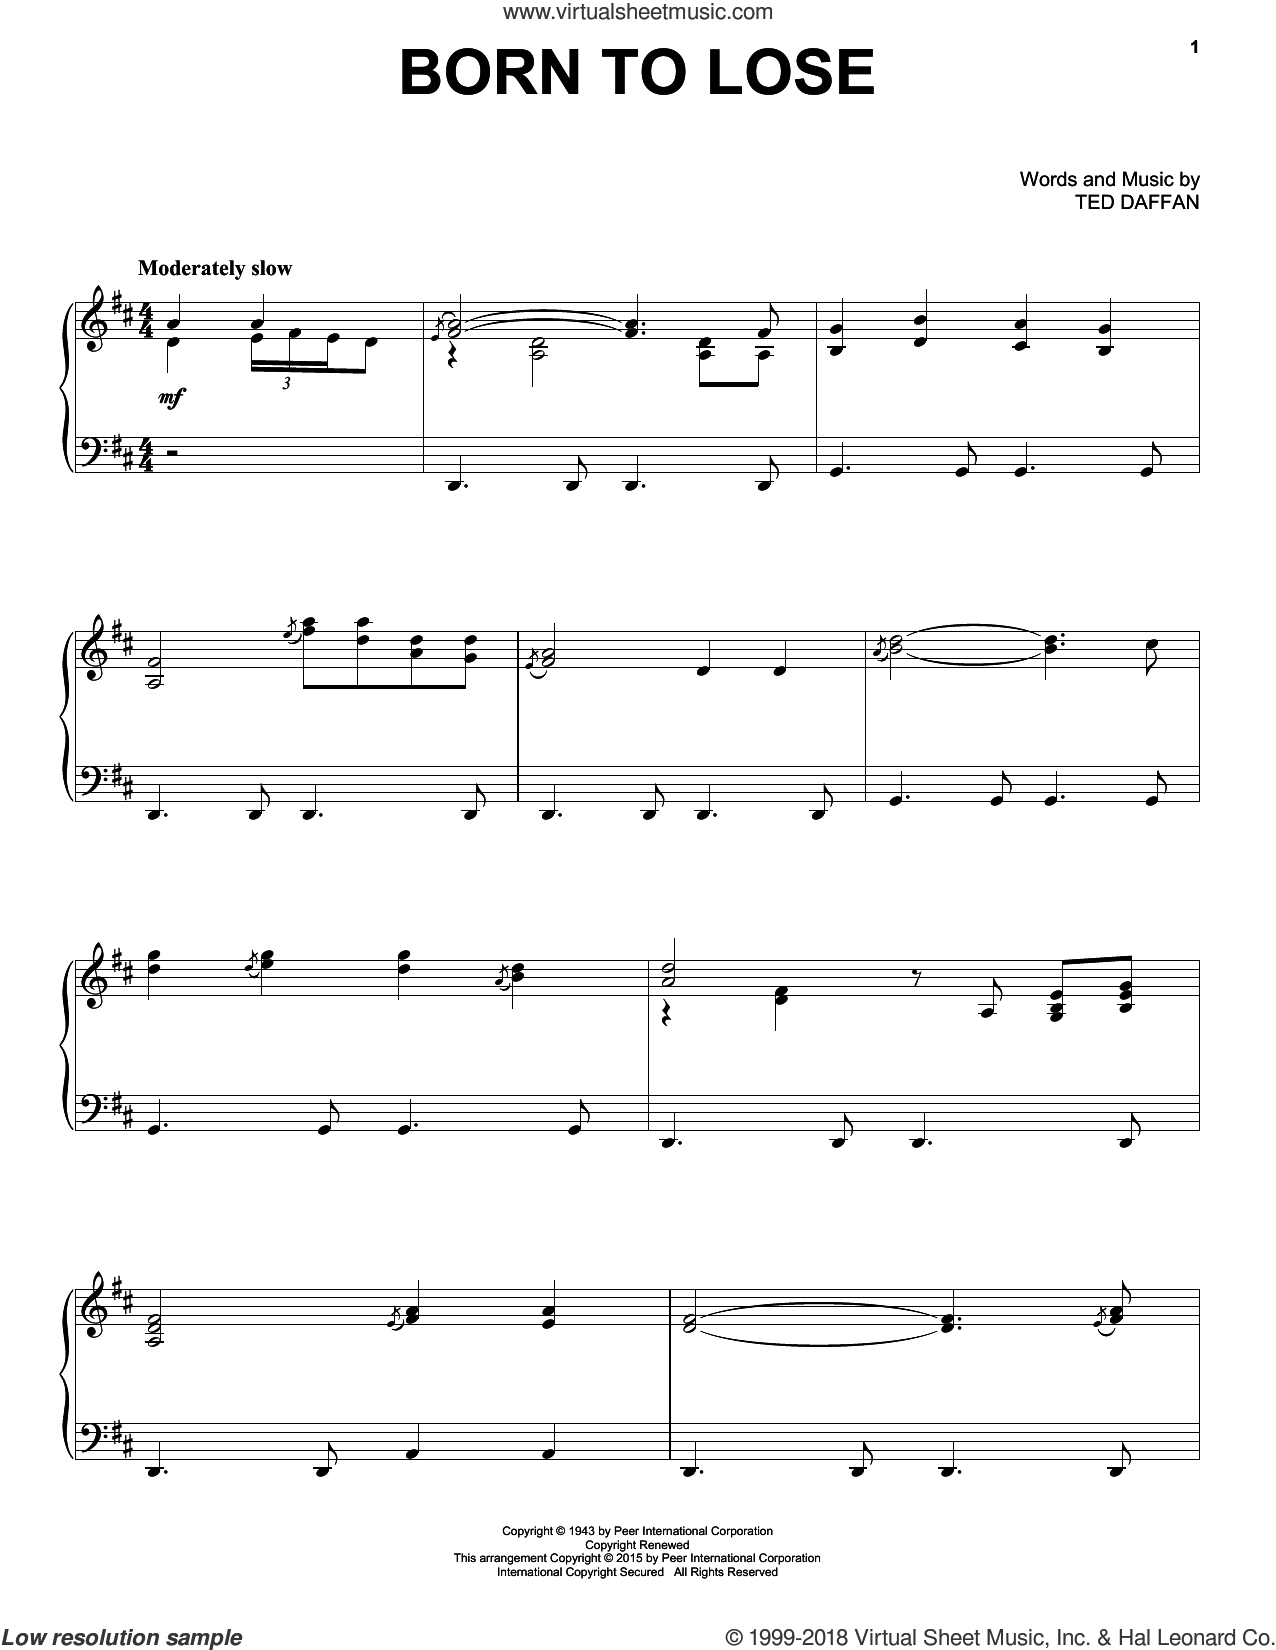 Born To Lose sheet music for piano solo by Ray Charles and Ted Daffan, intermediate skill level